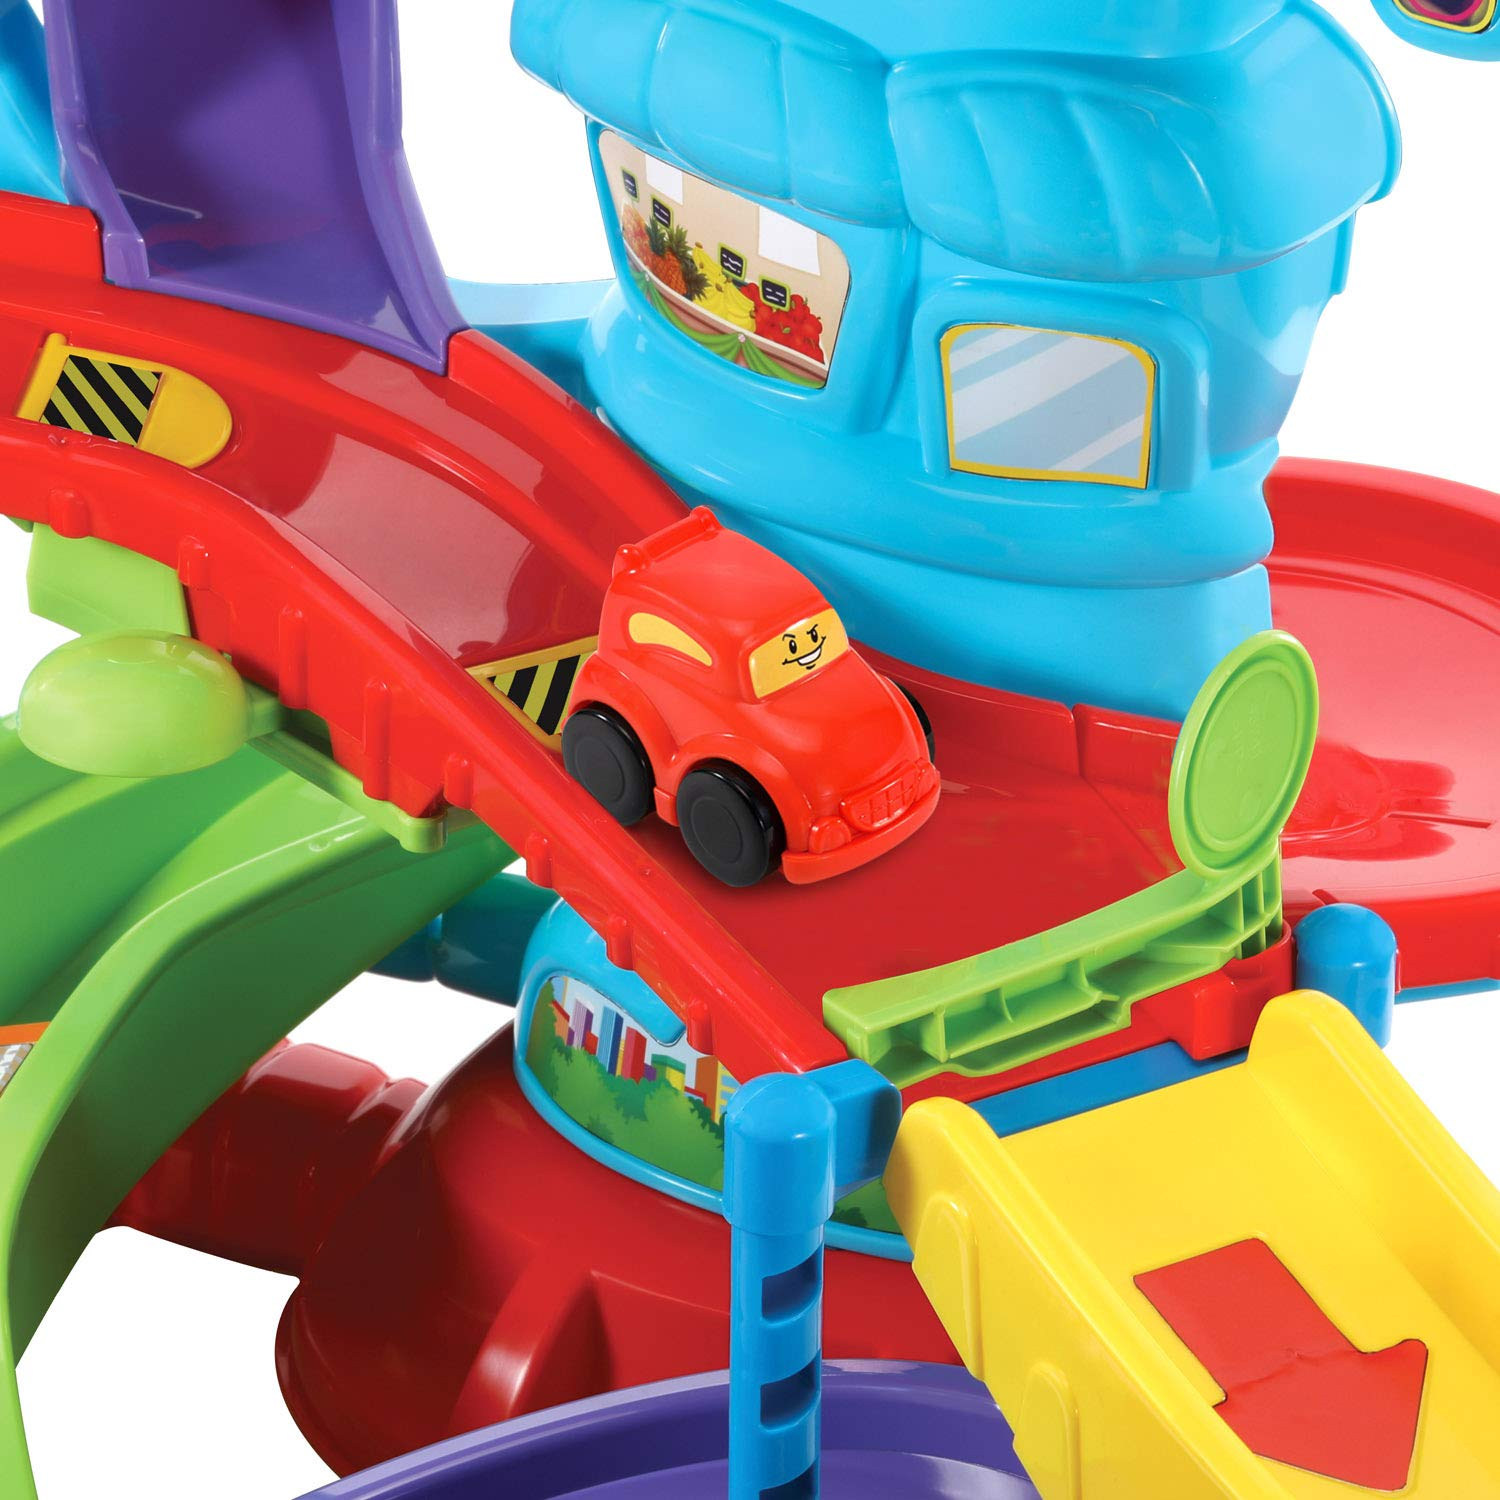 VTech Go! Go! Smart Wheels Launch and Chase Police Tower by VTech (Image #11)